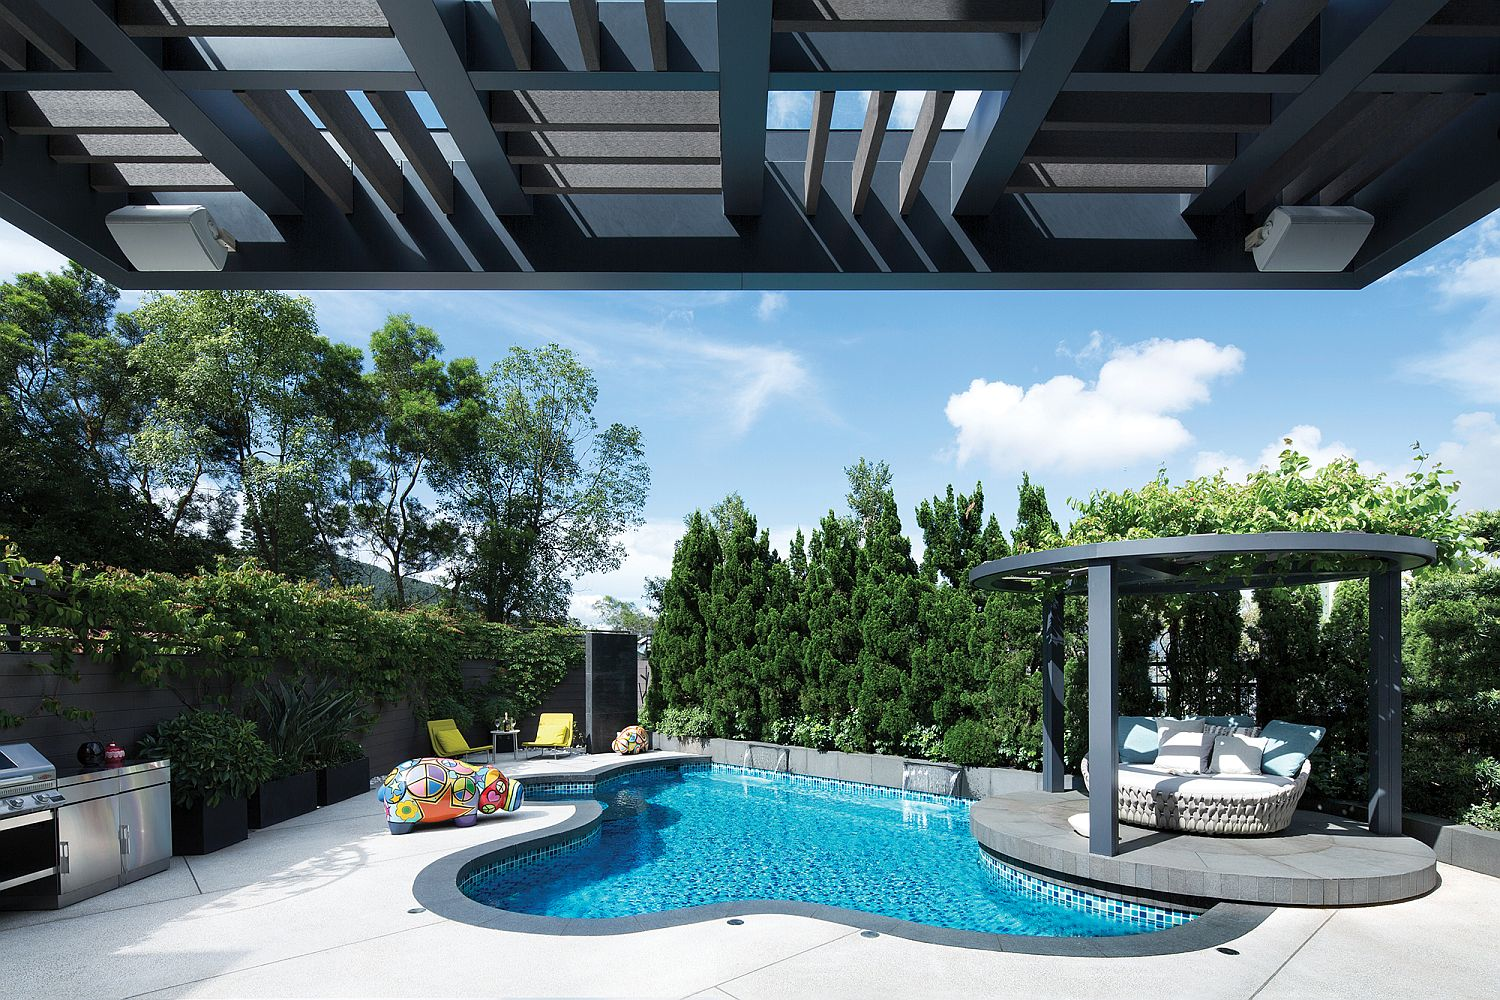 Contemporary-pool-with-an-irregular-design-and-a-snazzy-pergola-next-to-it-16834